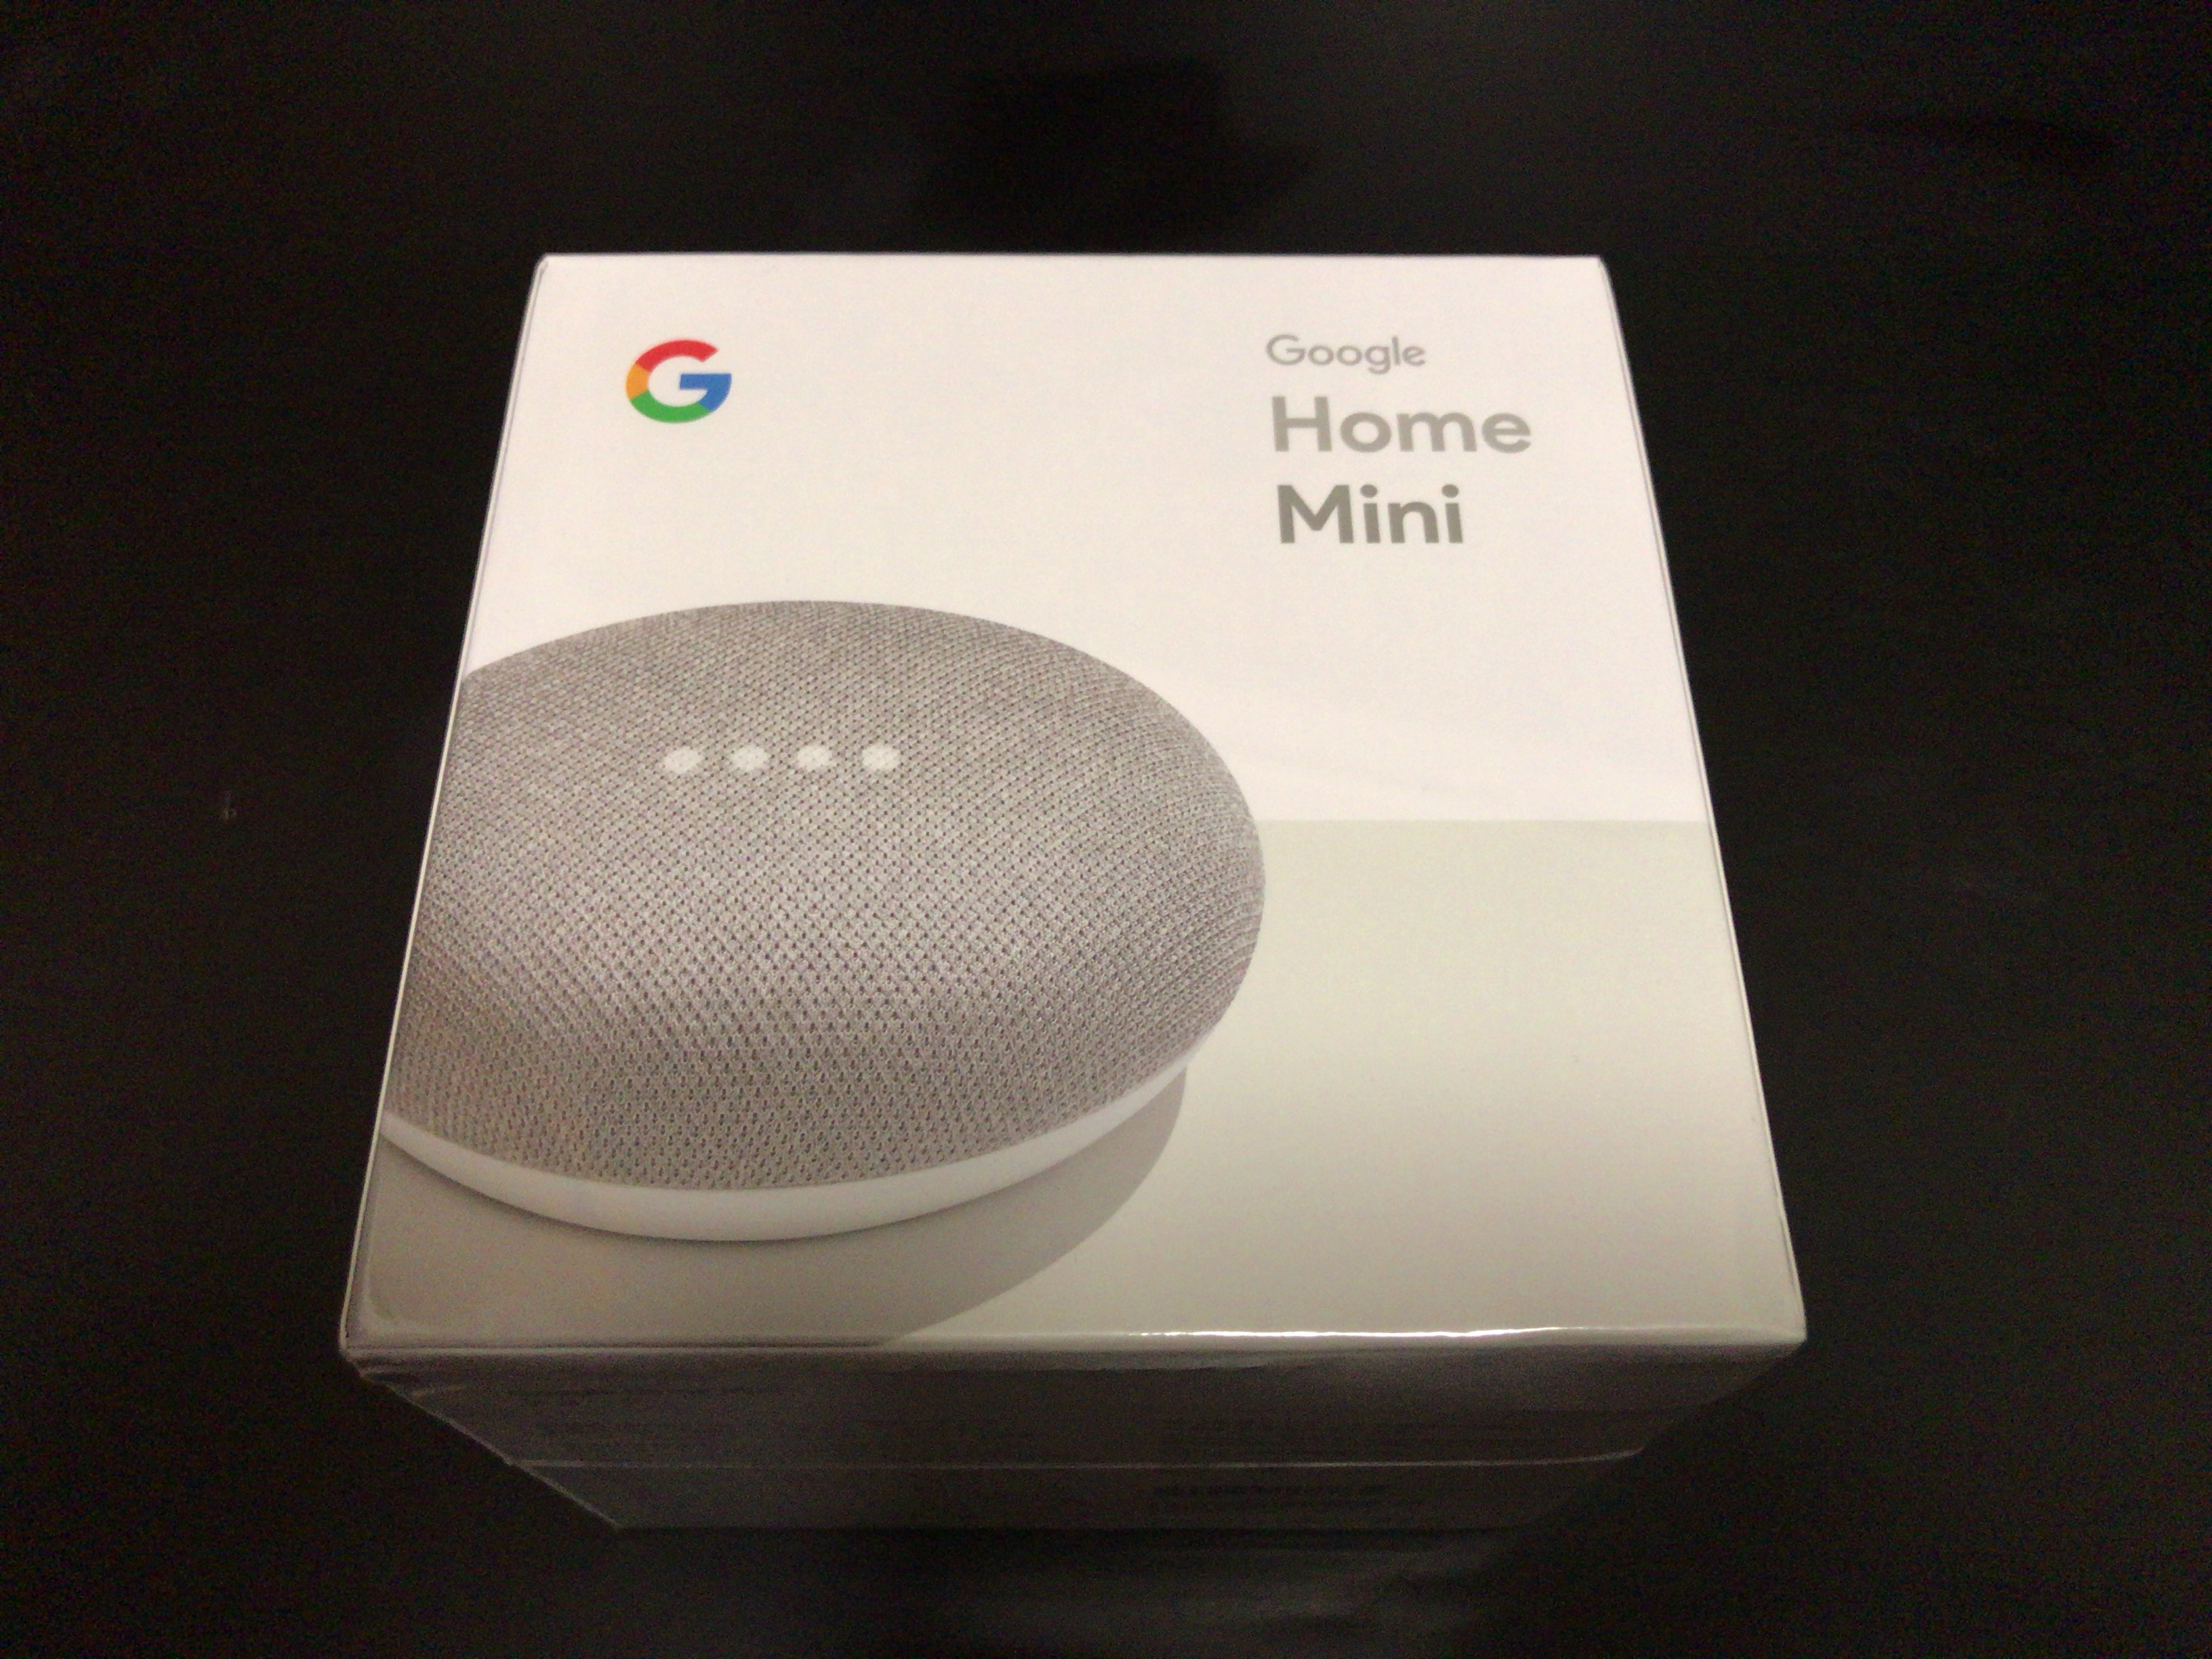 Google Home Miniを購入